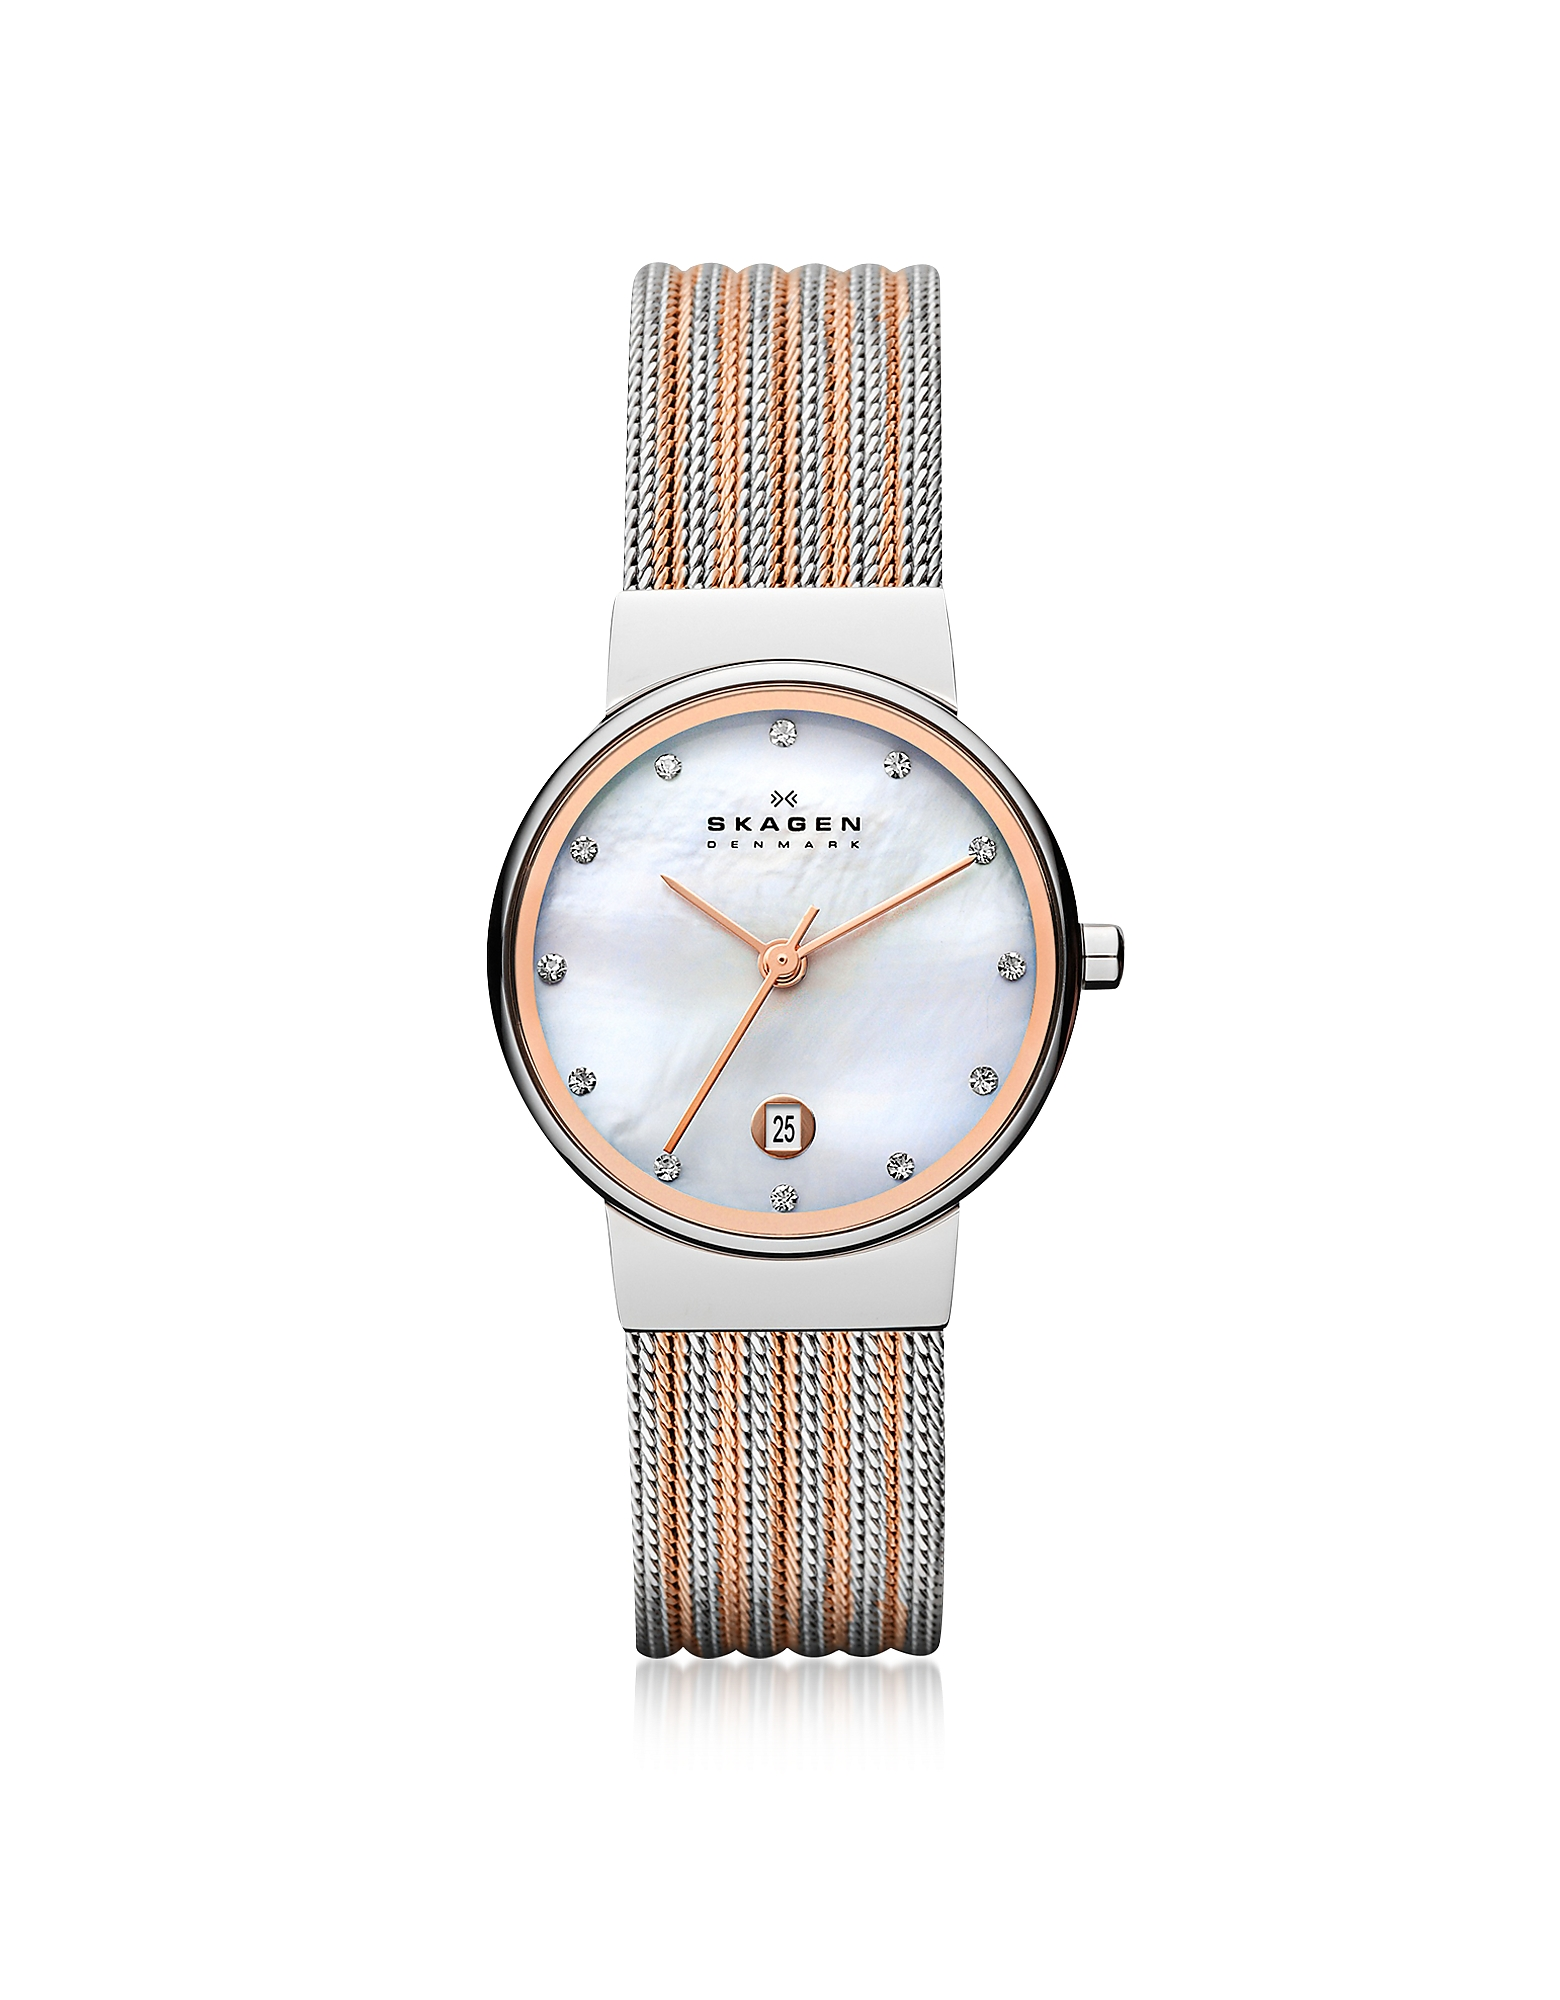 Skagen Women's Watches, Ancher Two Tone Striped Stainless Steel Mesh Women's Watch